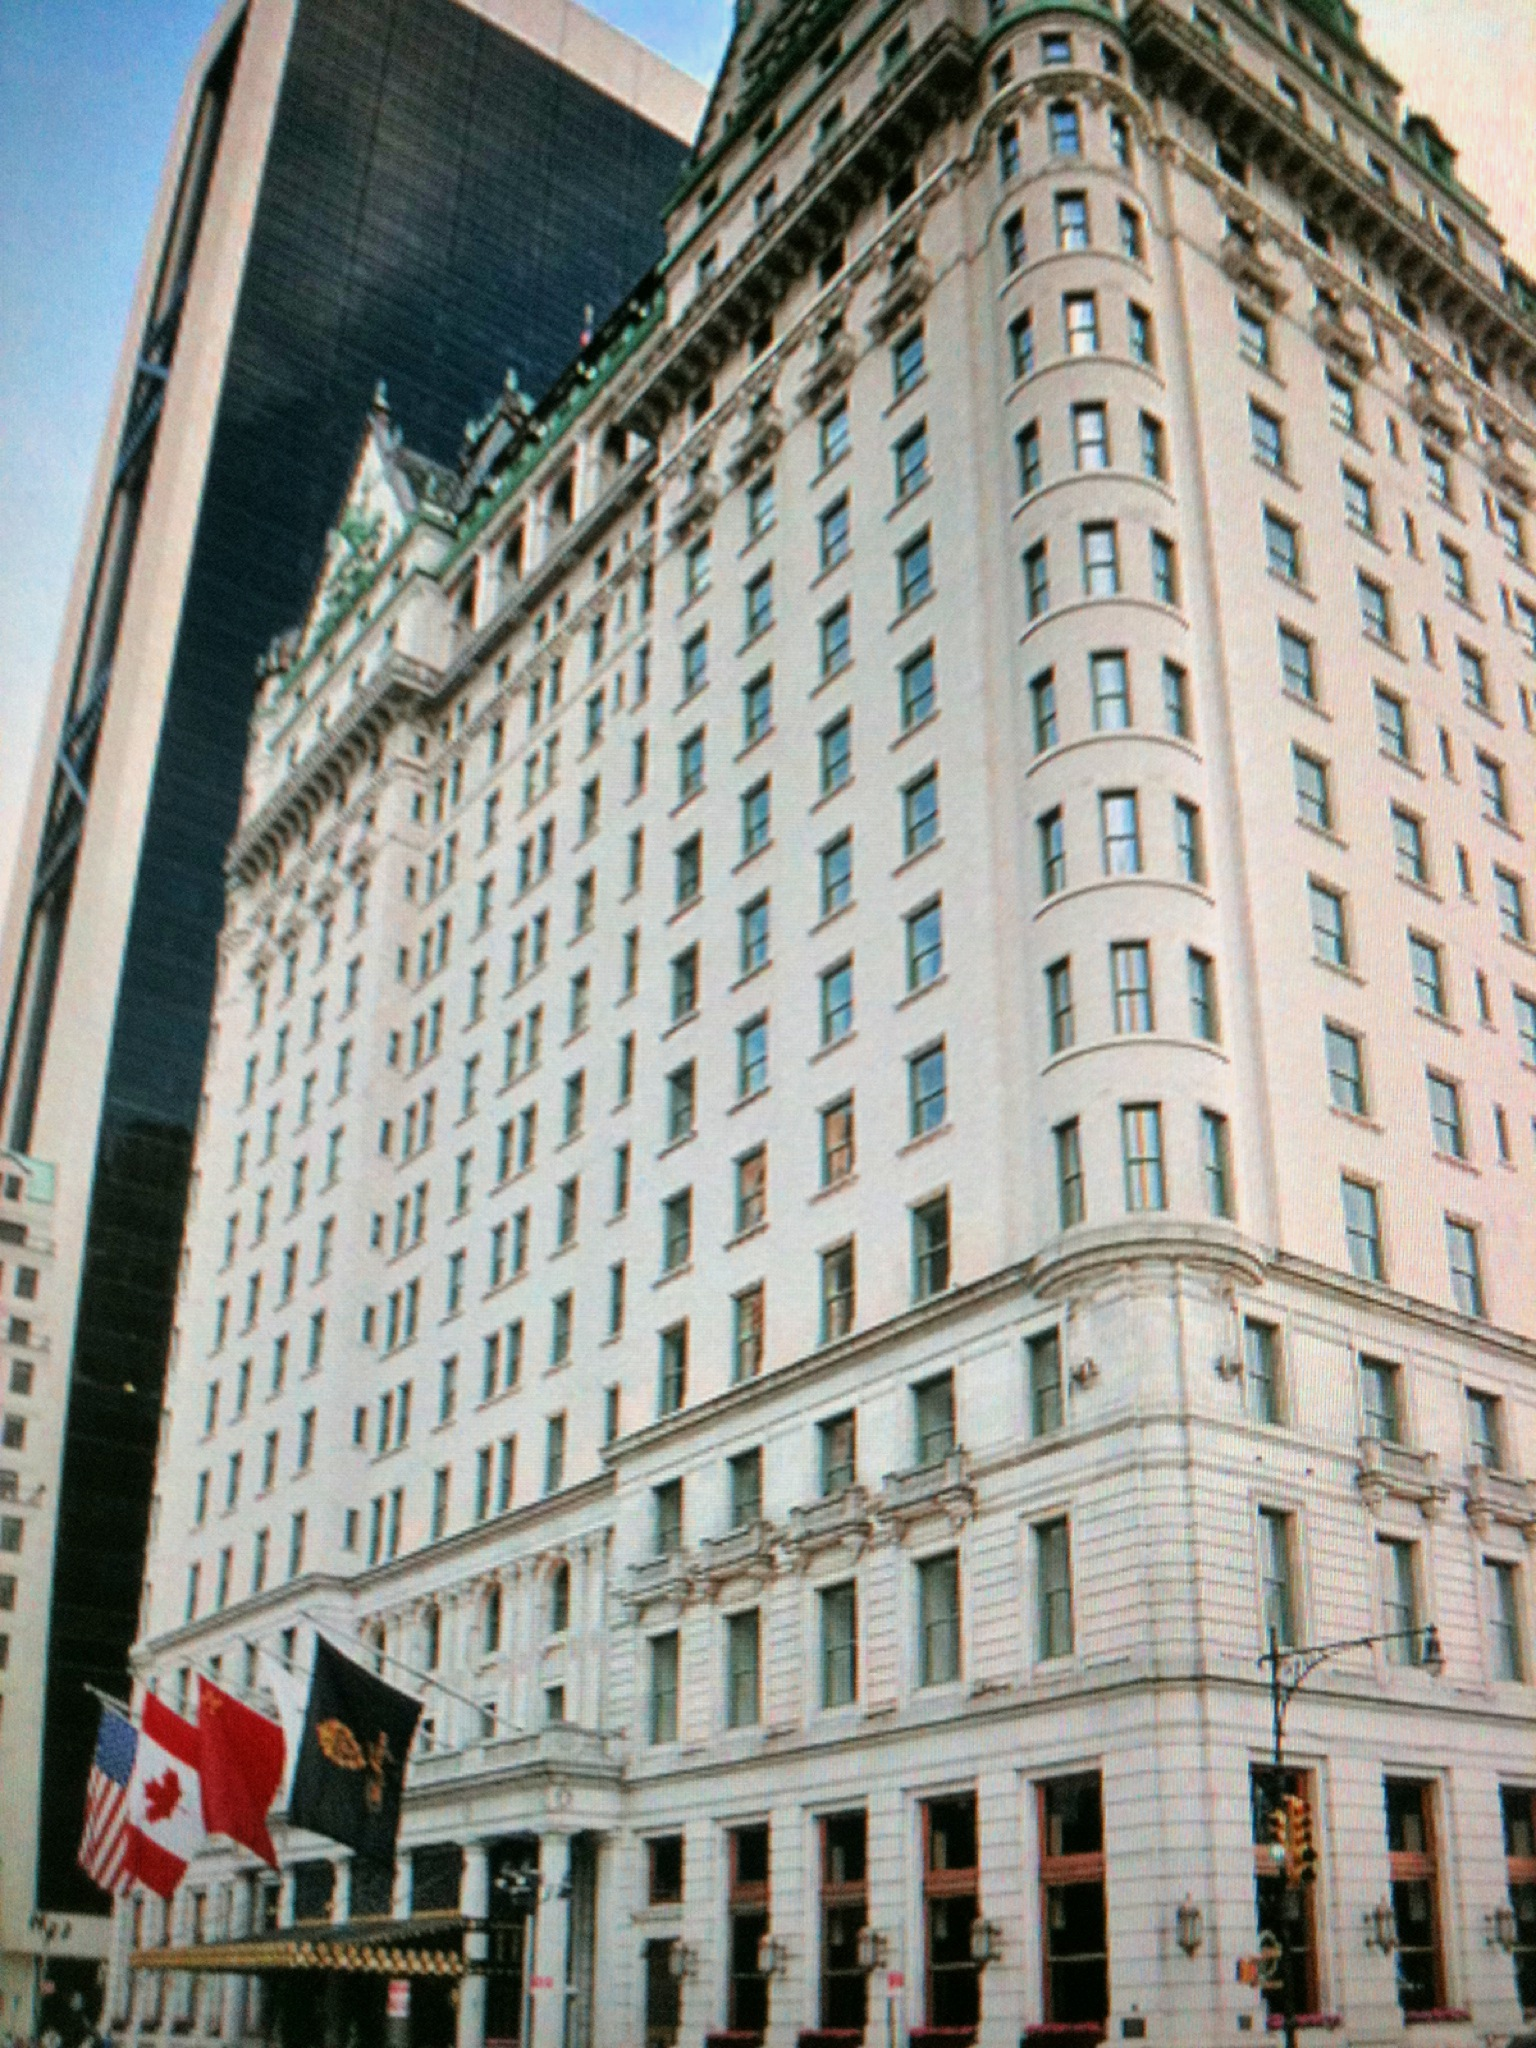 Hotel Review: The Plaza Hotel (New York City) | Hotel Slippers